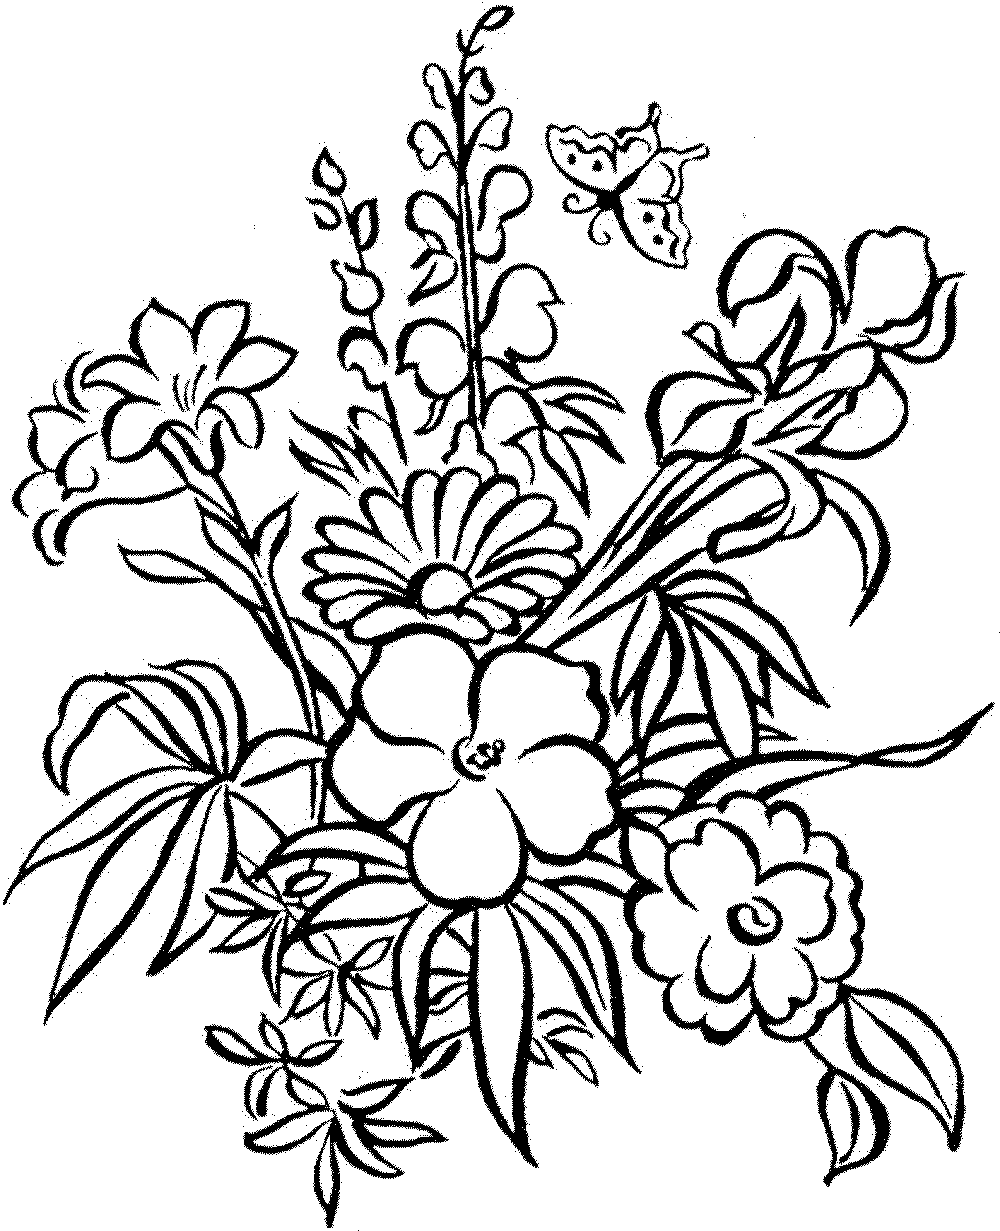 detailed flower coloring pages to download and print for free. Black Bedroom Furniture Sets. Home Design Ideas